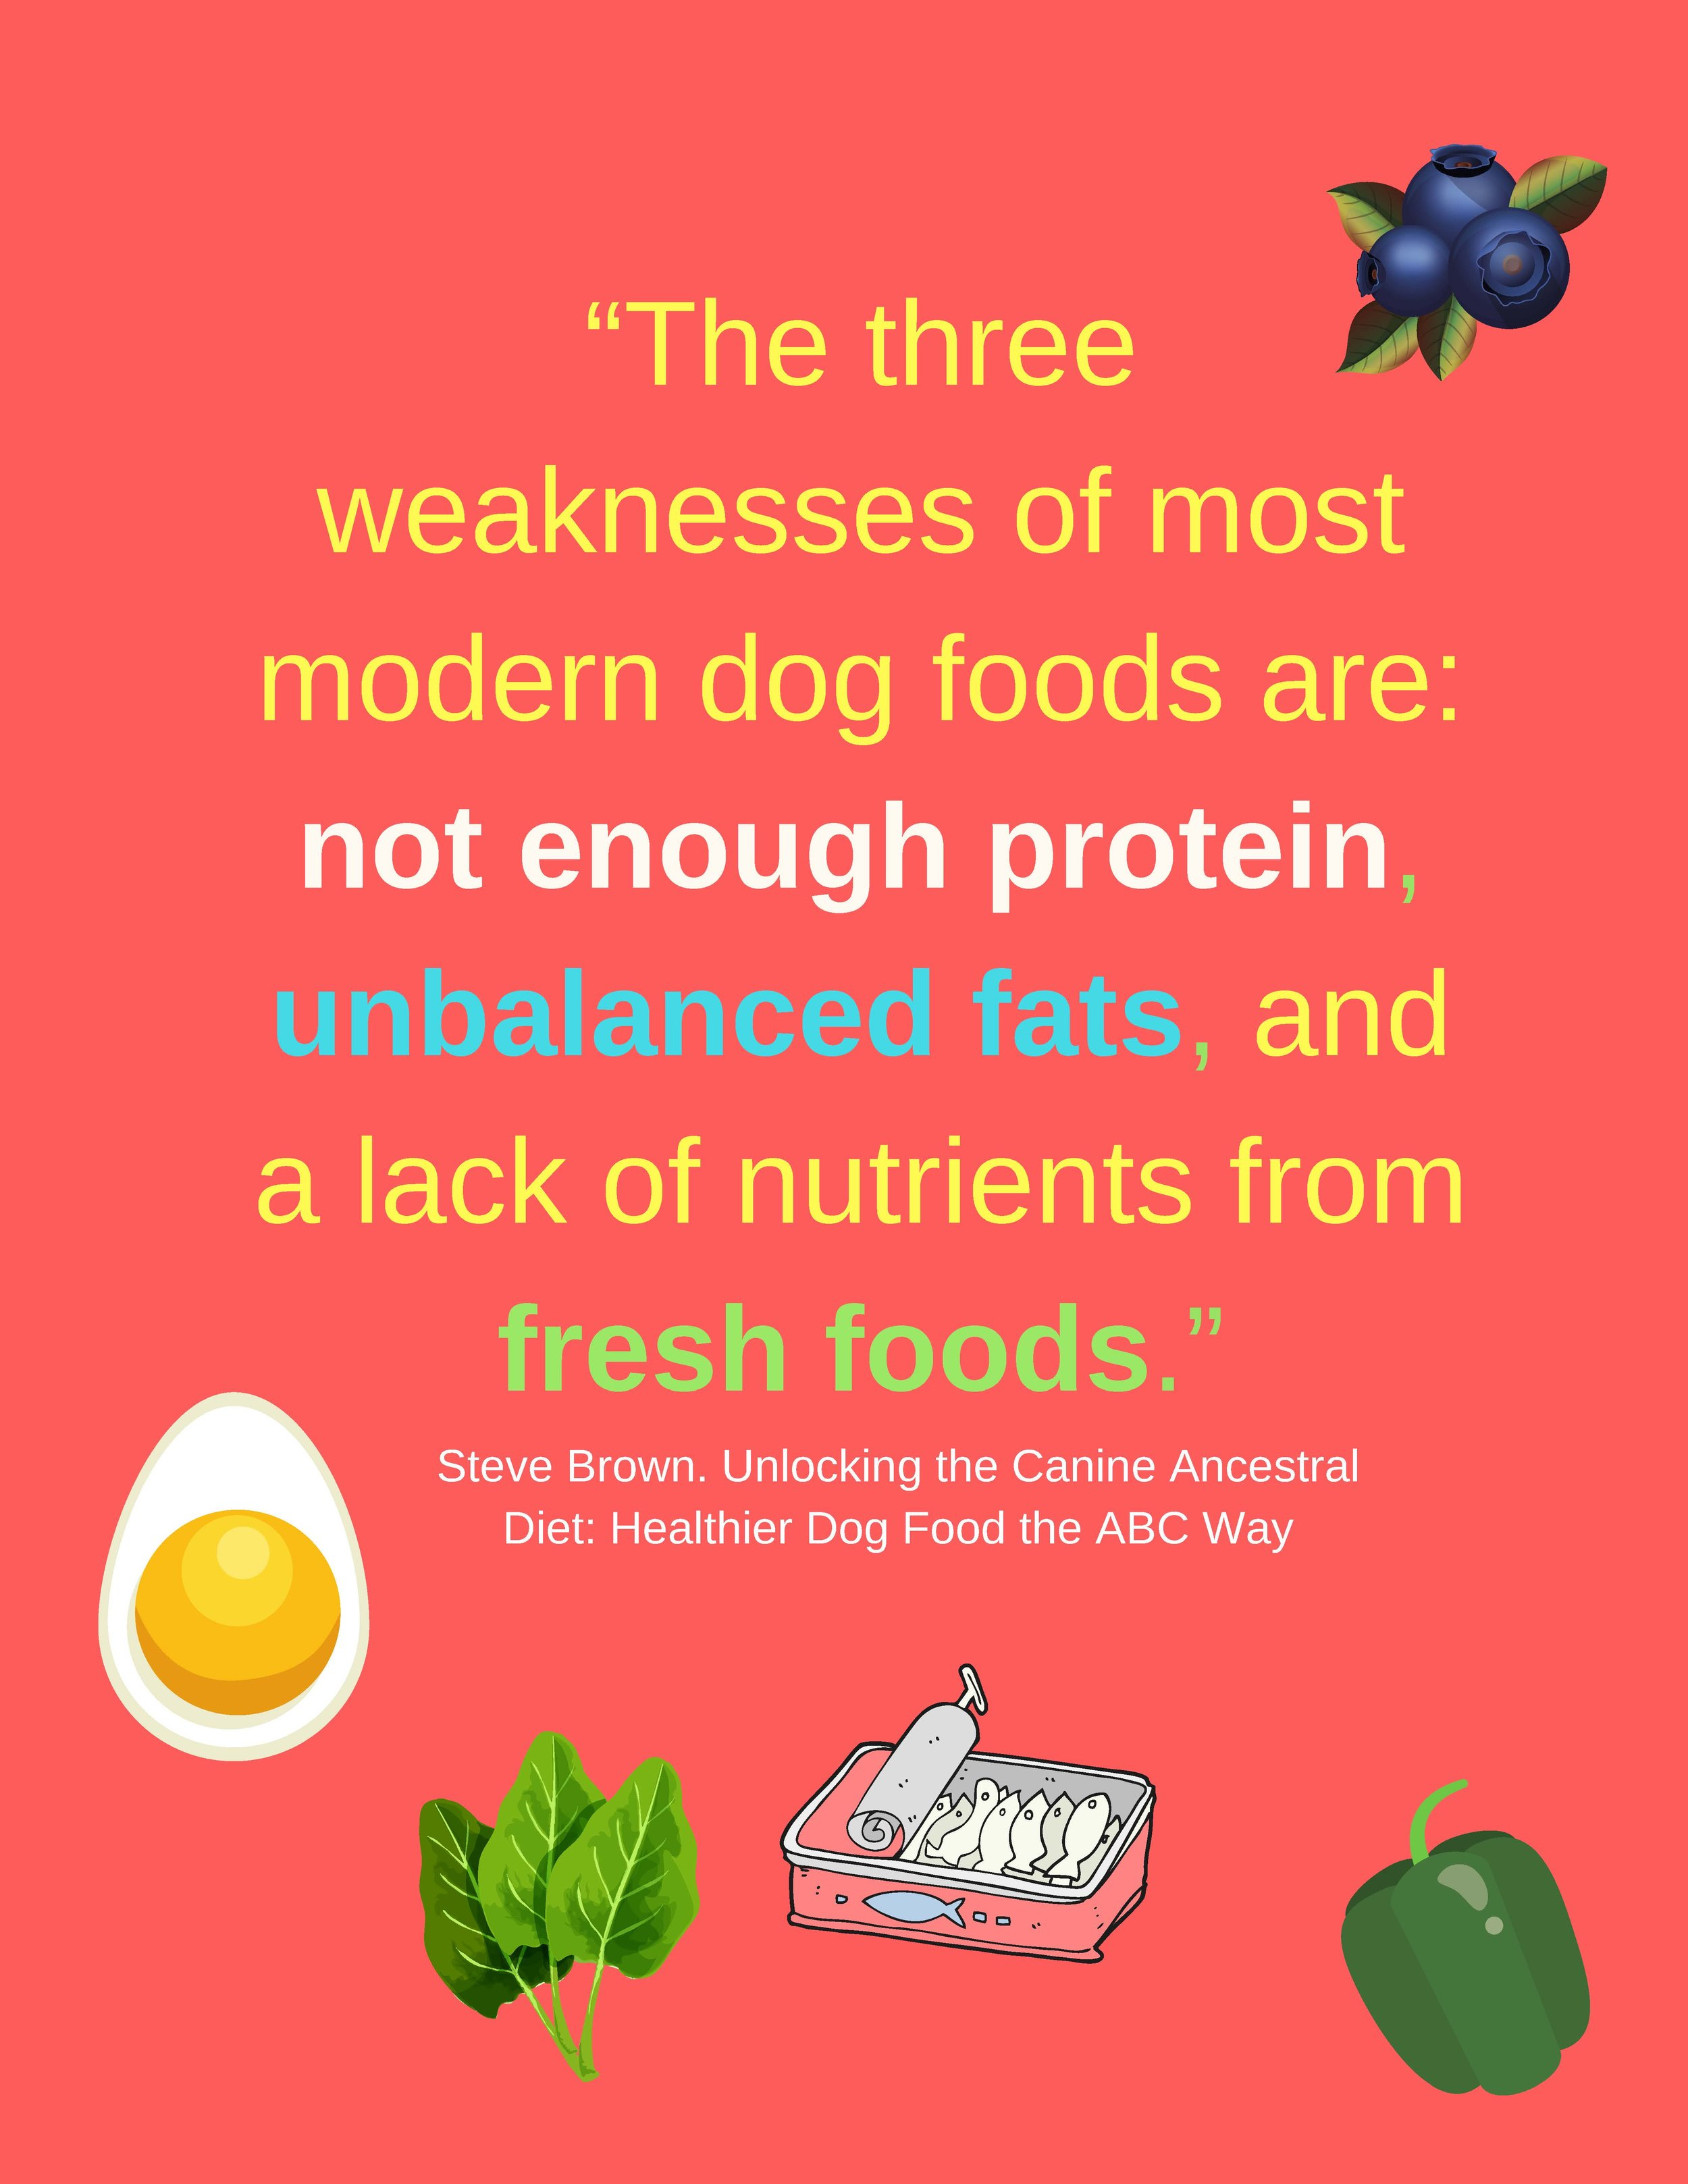 """Dogs, like people, need some fresh whole foods."".jpg"